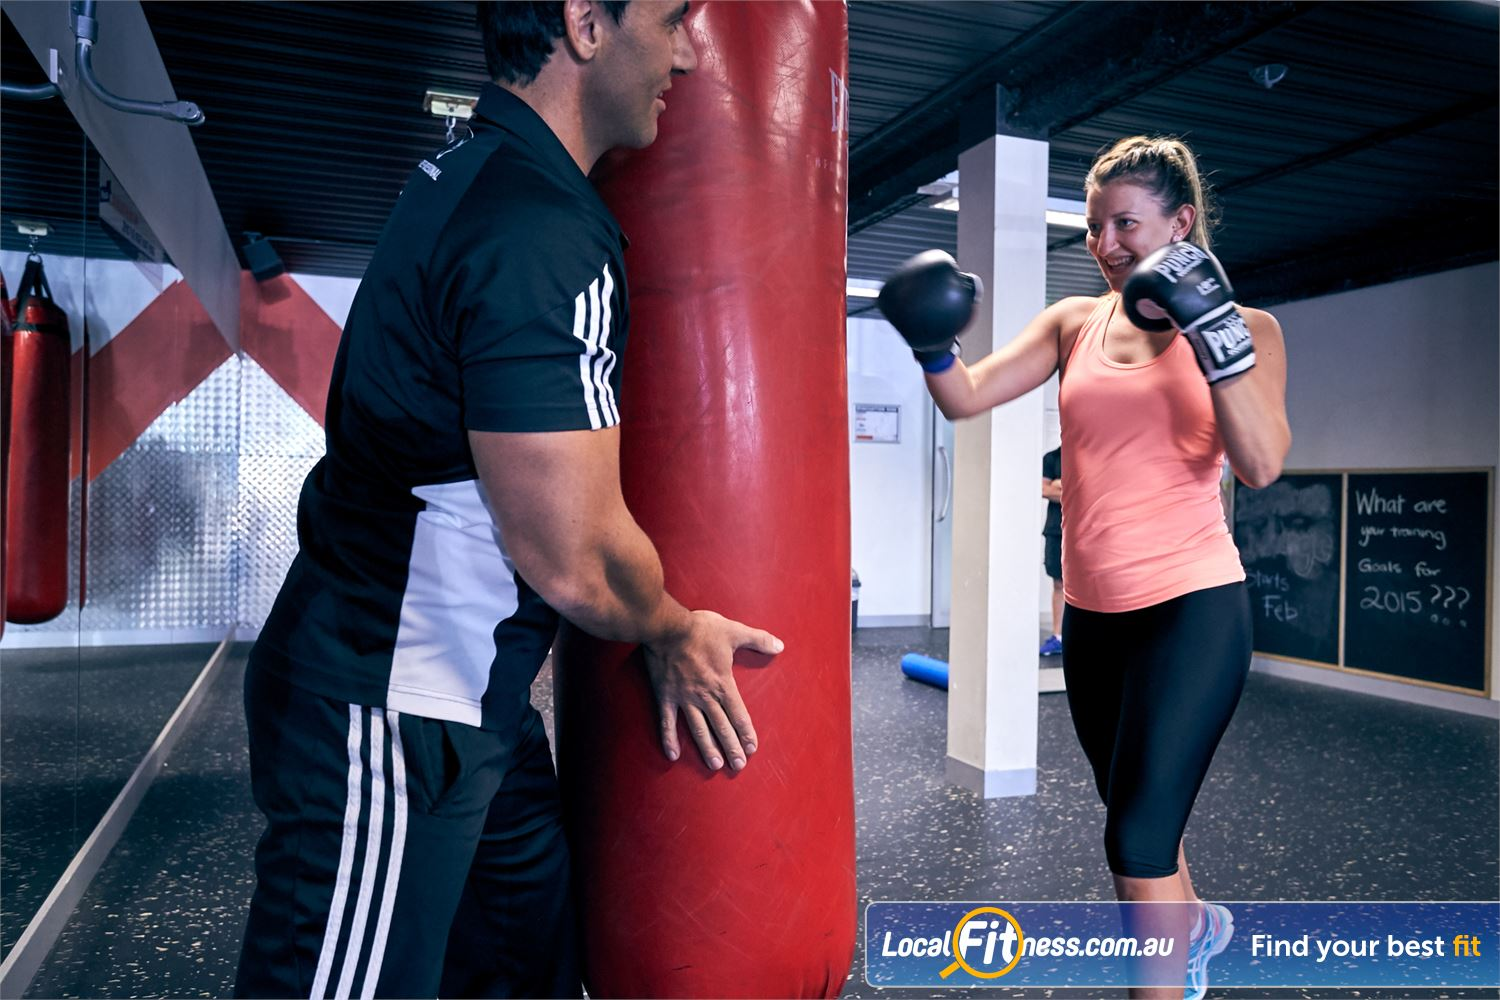 Goodlife Health Clubs Cross Roads Near Hawthorn Our Westbourne Park personal trainers can take you through a cardio boxing routine in our boxing studio.